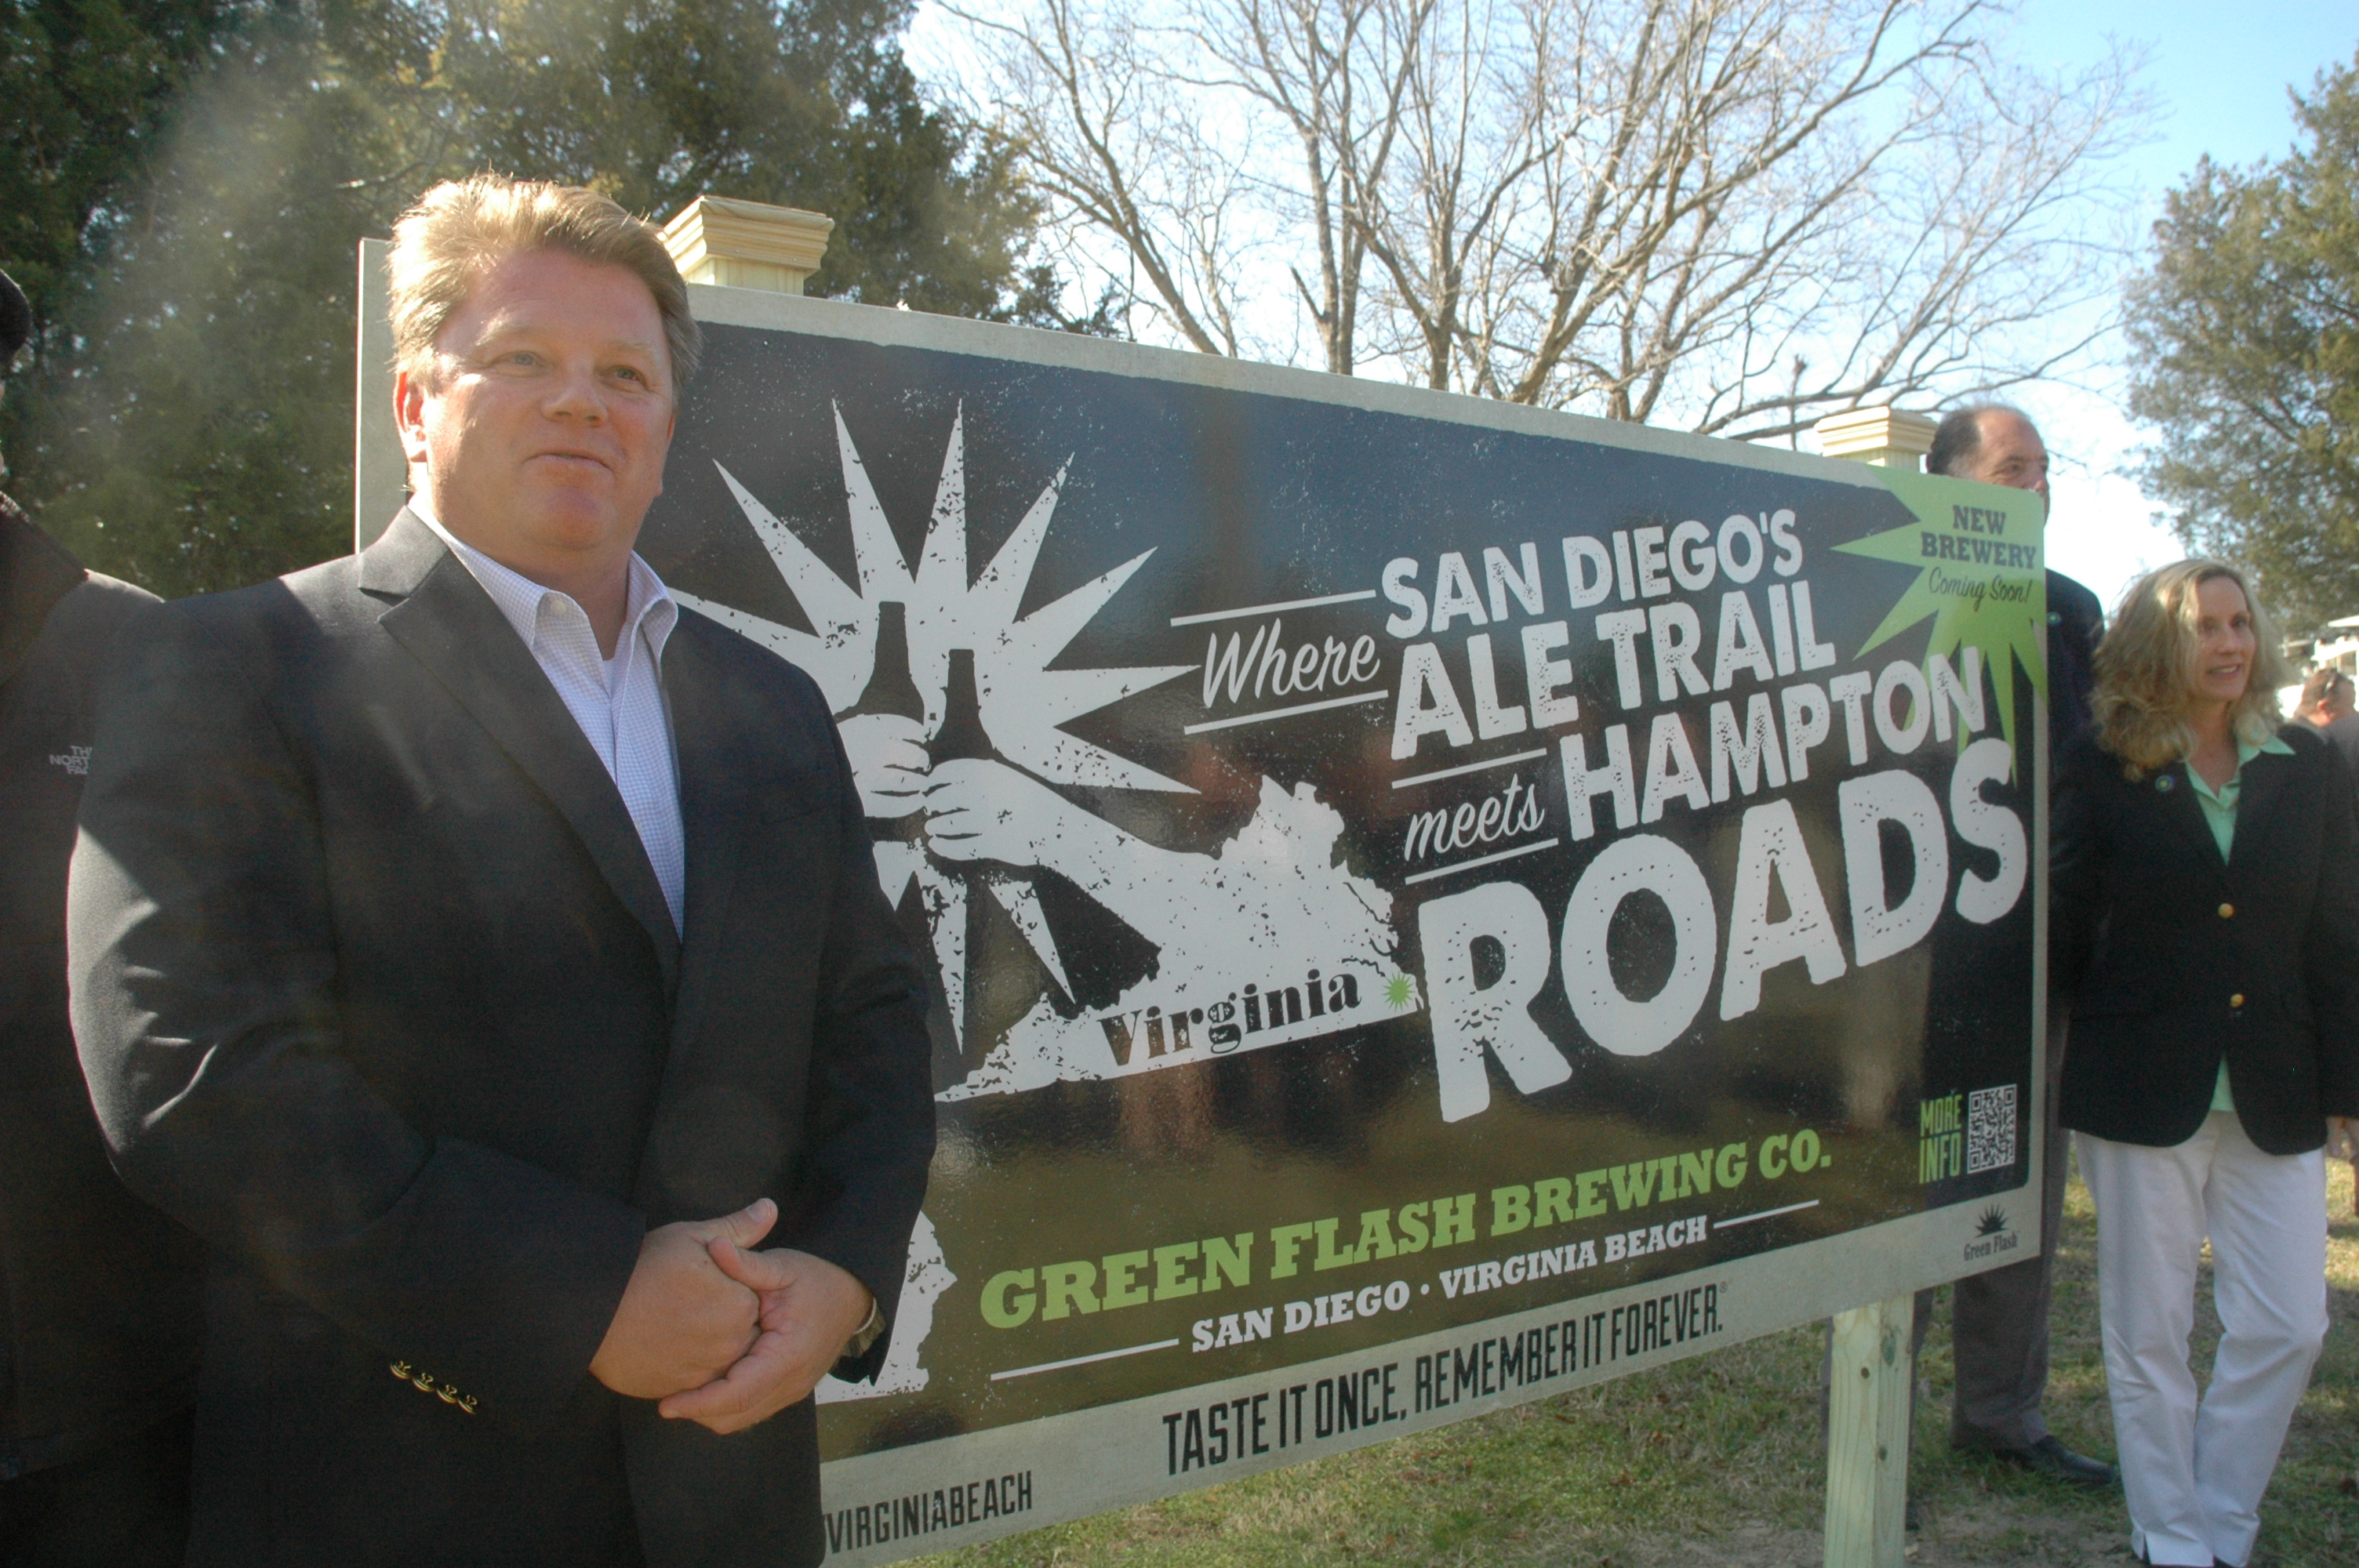 Green Flash Foreclosed Upon